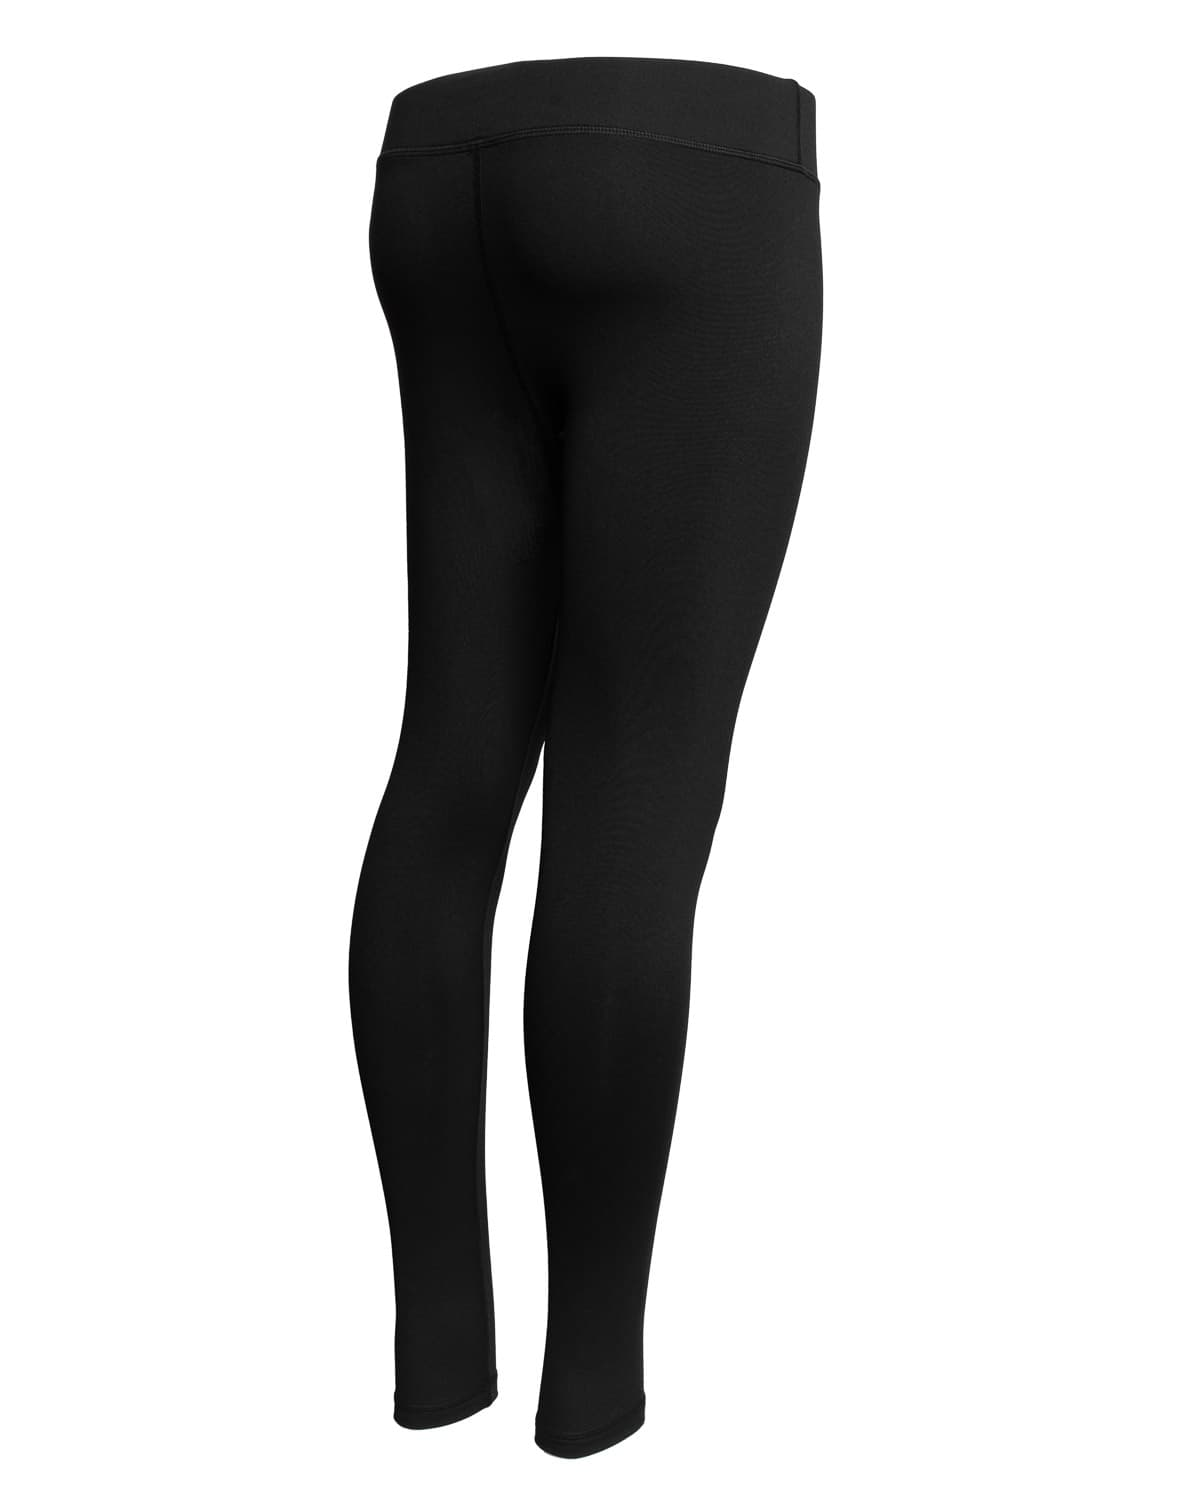 Subsidia Mid Waist Leggings - Black/White